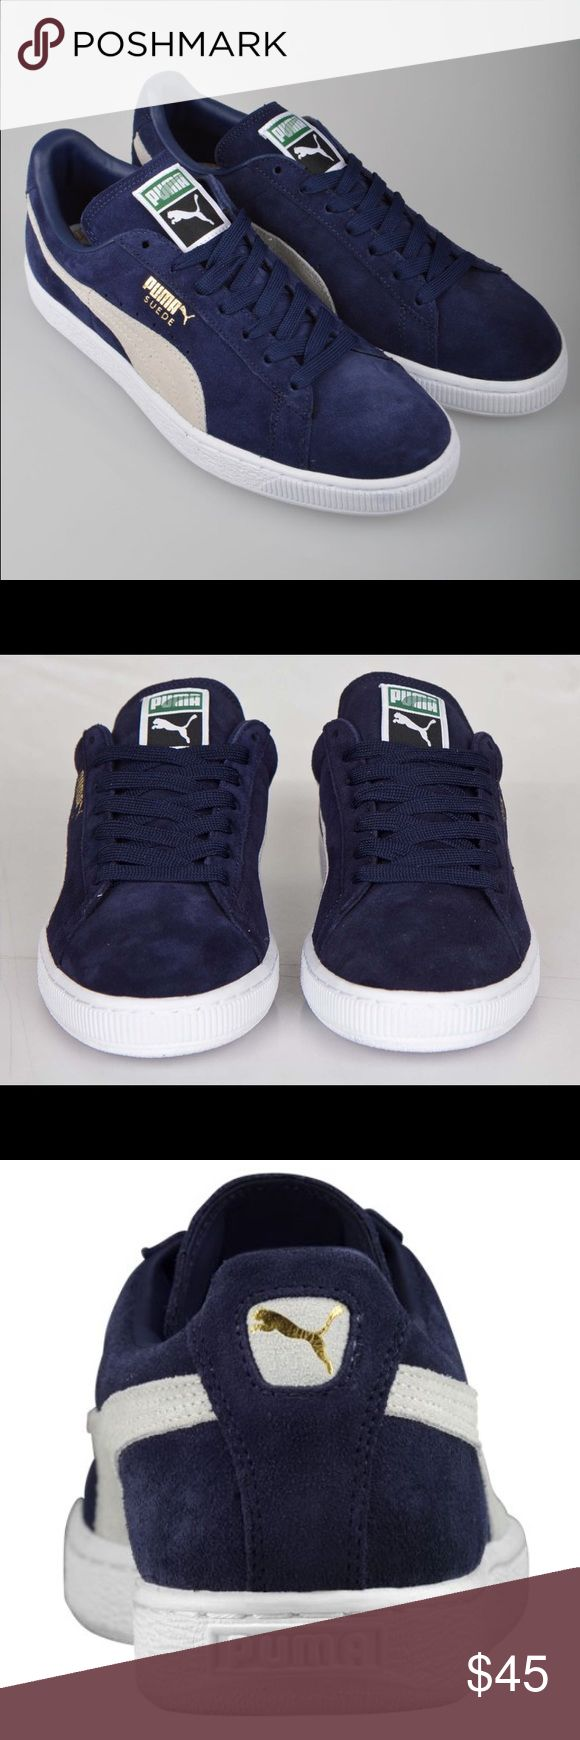 PUMA CLASSIC BLUE SUEDE PUMA CLASSIC BLUE SUEDE ~ NEW ~ WAS A CHRISTMAS GIFT & THEY ARE TOO BIG FOR ME ~ ONLY WORN IN THE HOUSE ONCE ~ COMES WITH BOX ~ DARK BLUE SUEDE & SHOE LACES Puma Shoes